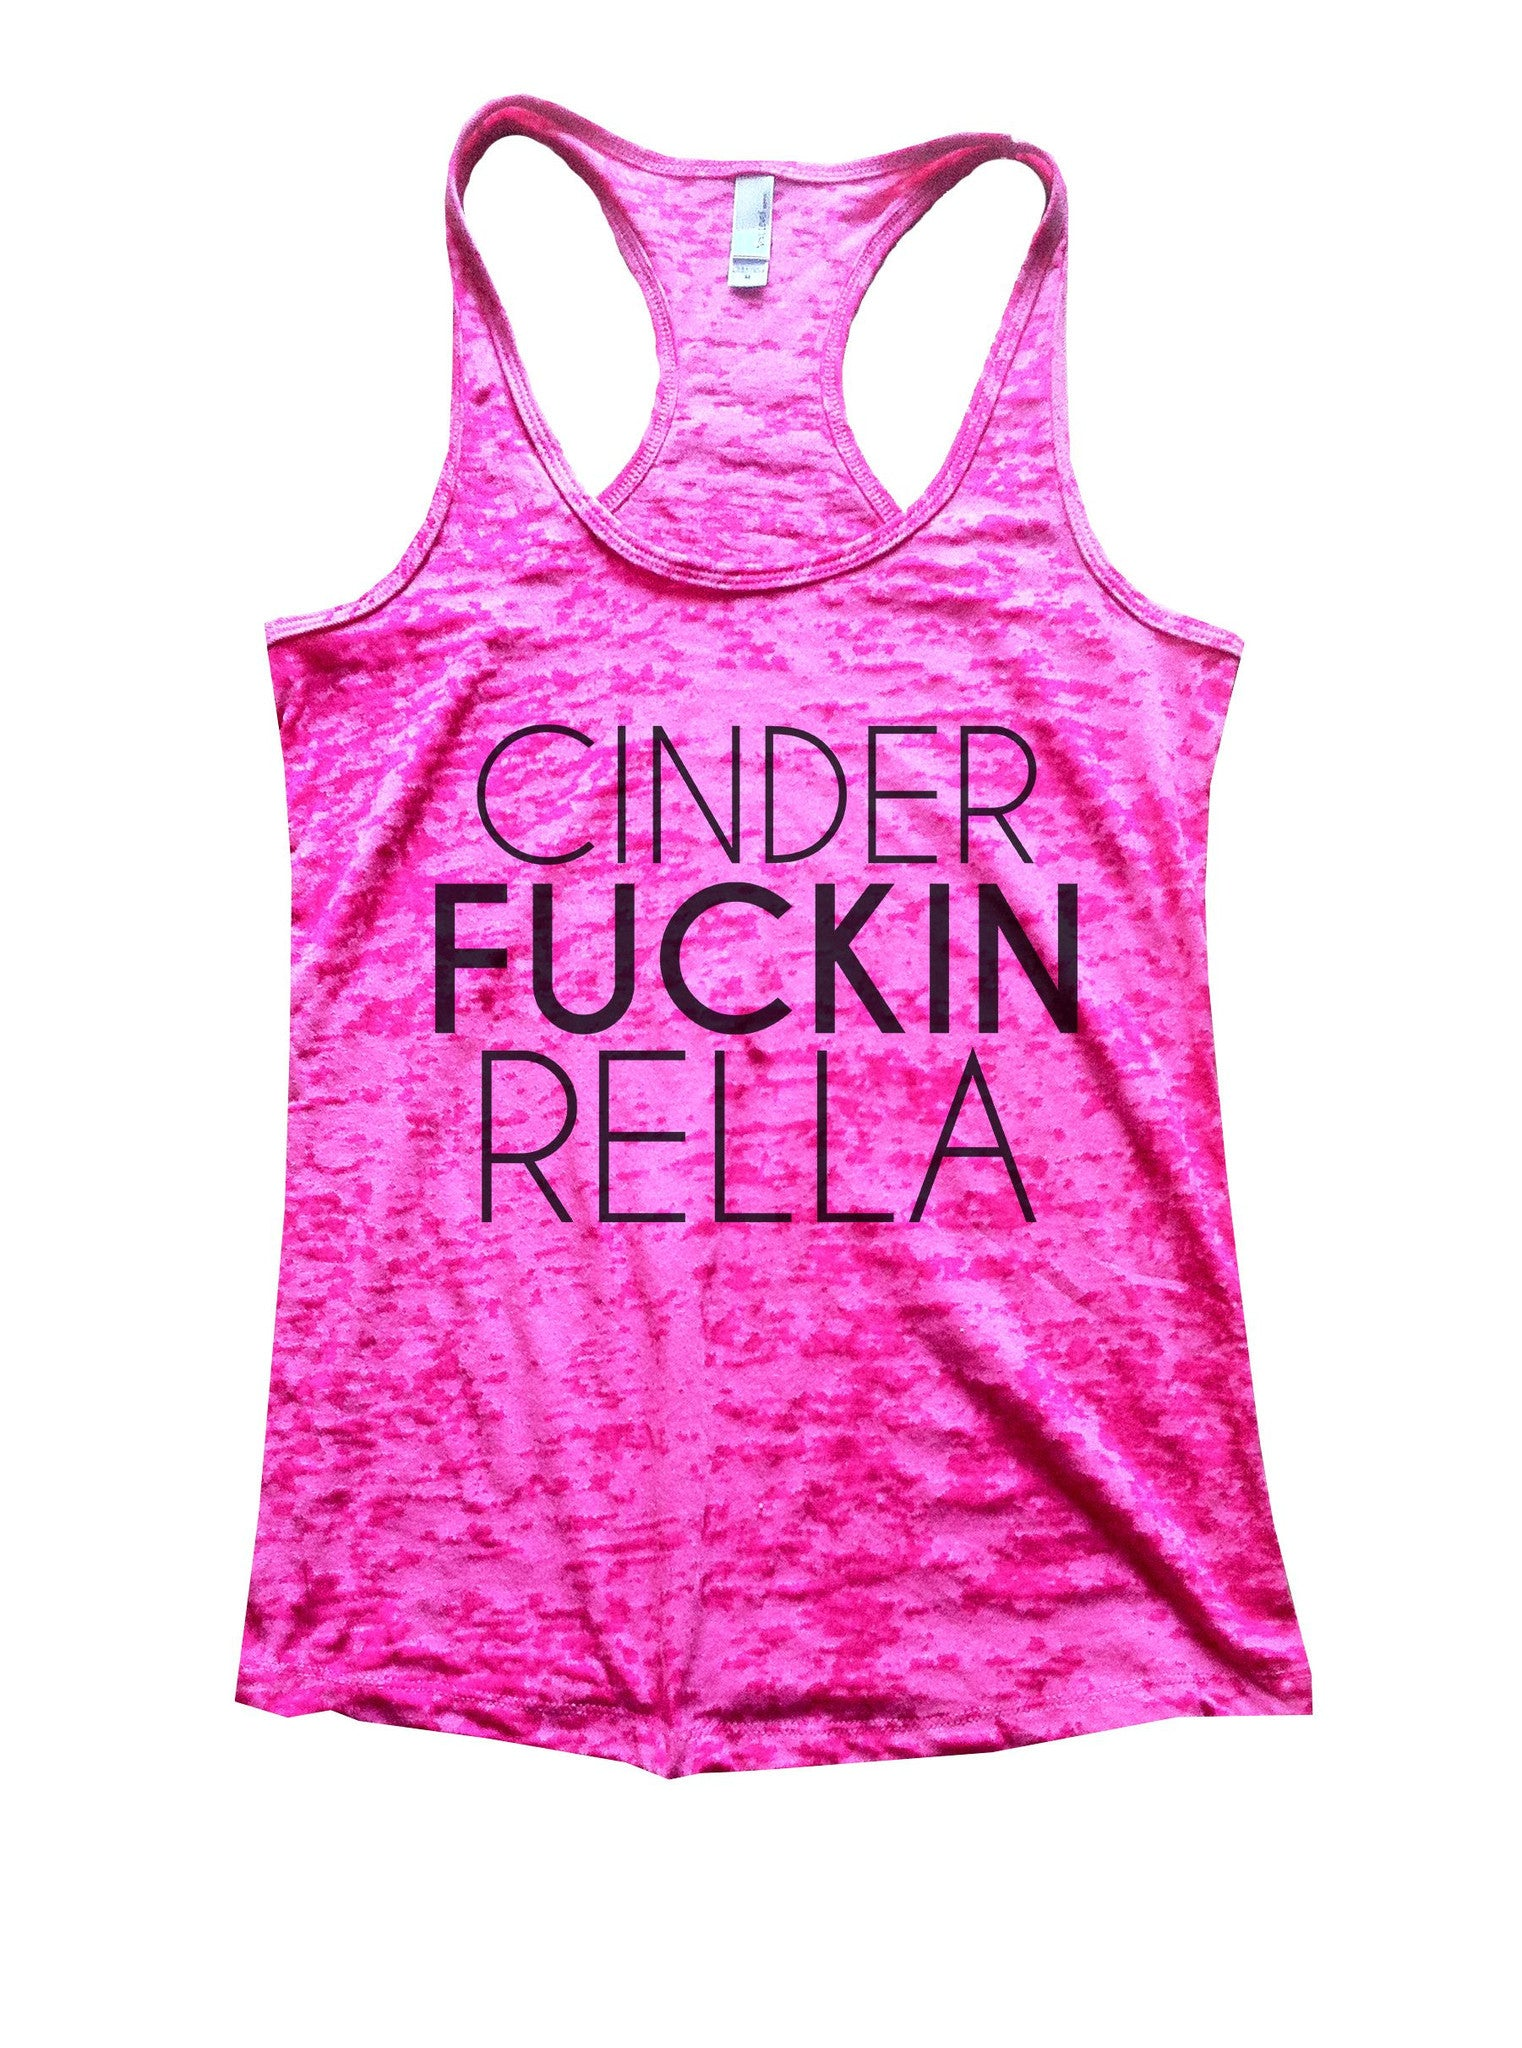 Cinder Fuckin Rella Burnout Tank Top By BurnoutTankTops.com - 1113 - Funny Shirts Tank Tops Burnouts and Triblends  - 4